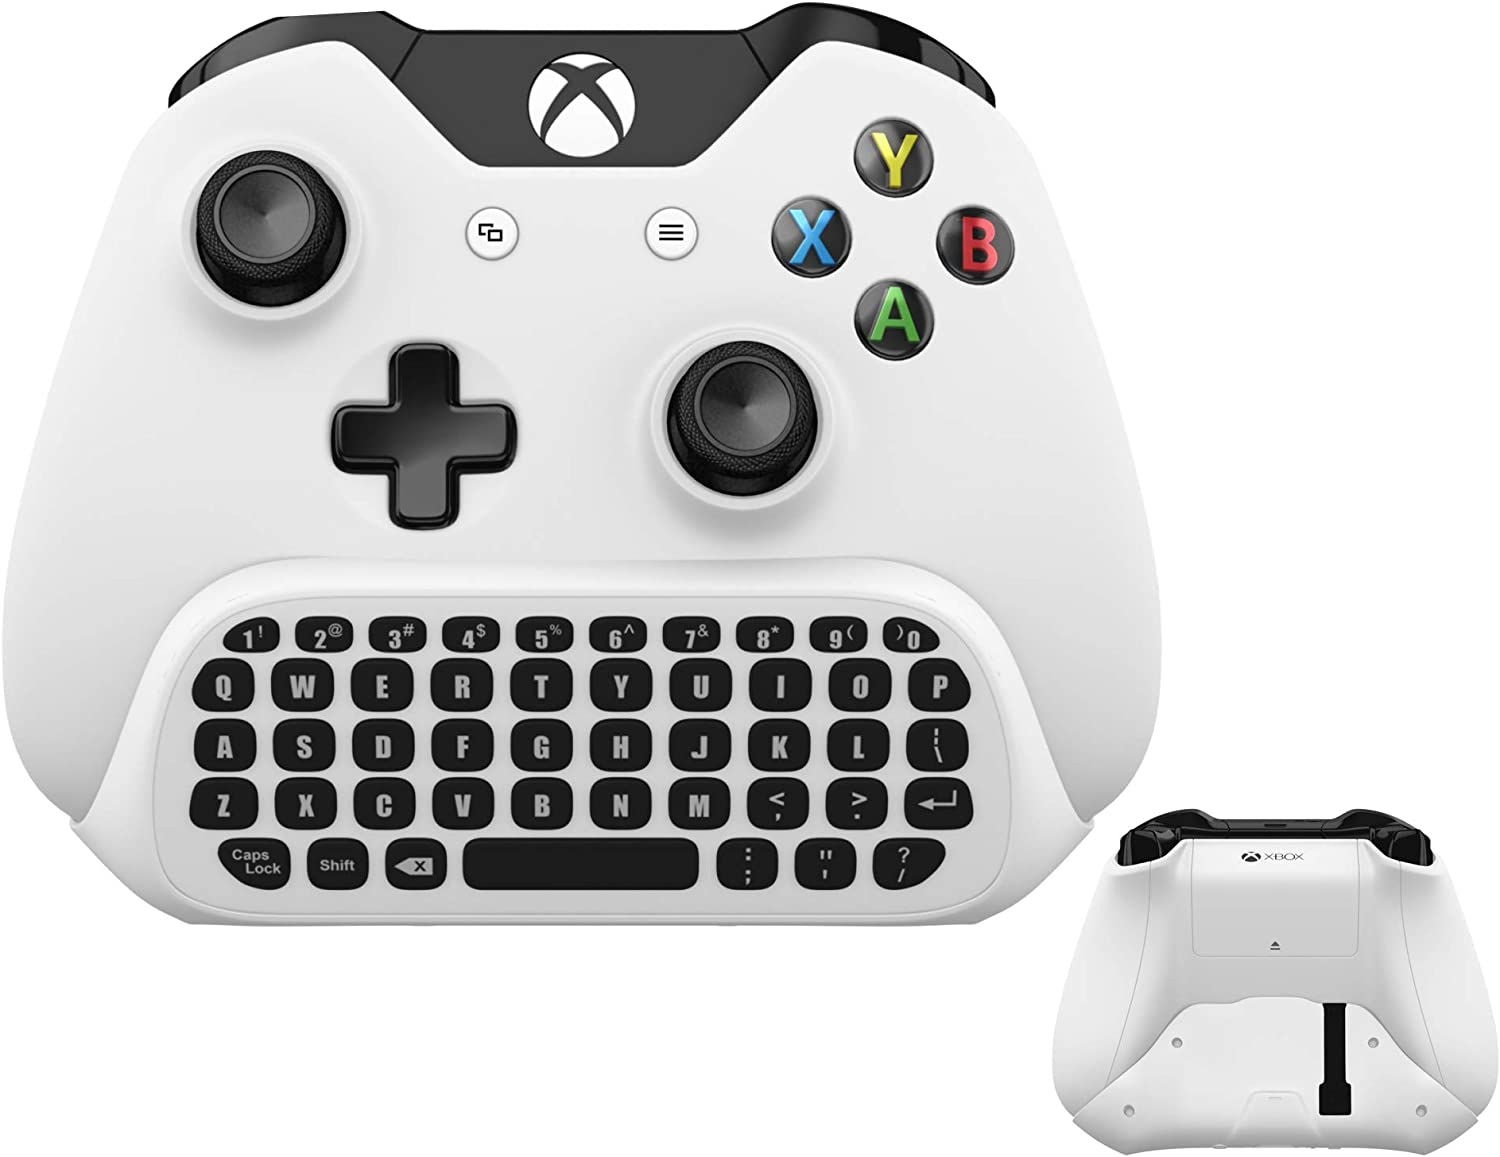 Wireless Keyboard ChatPad for Microsoft Xbox One S Keyboard White with USB Receiver with Audio/Headset Jack for Xbox One Elite & Slim Controller